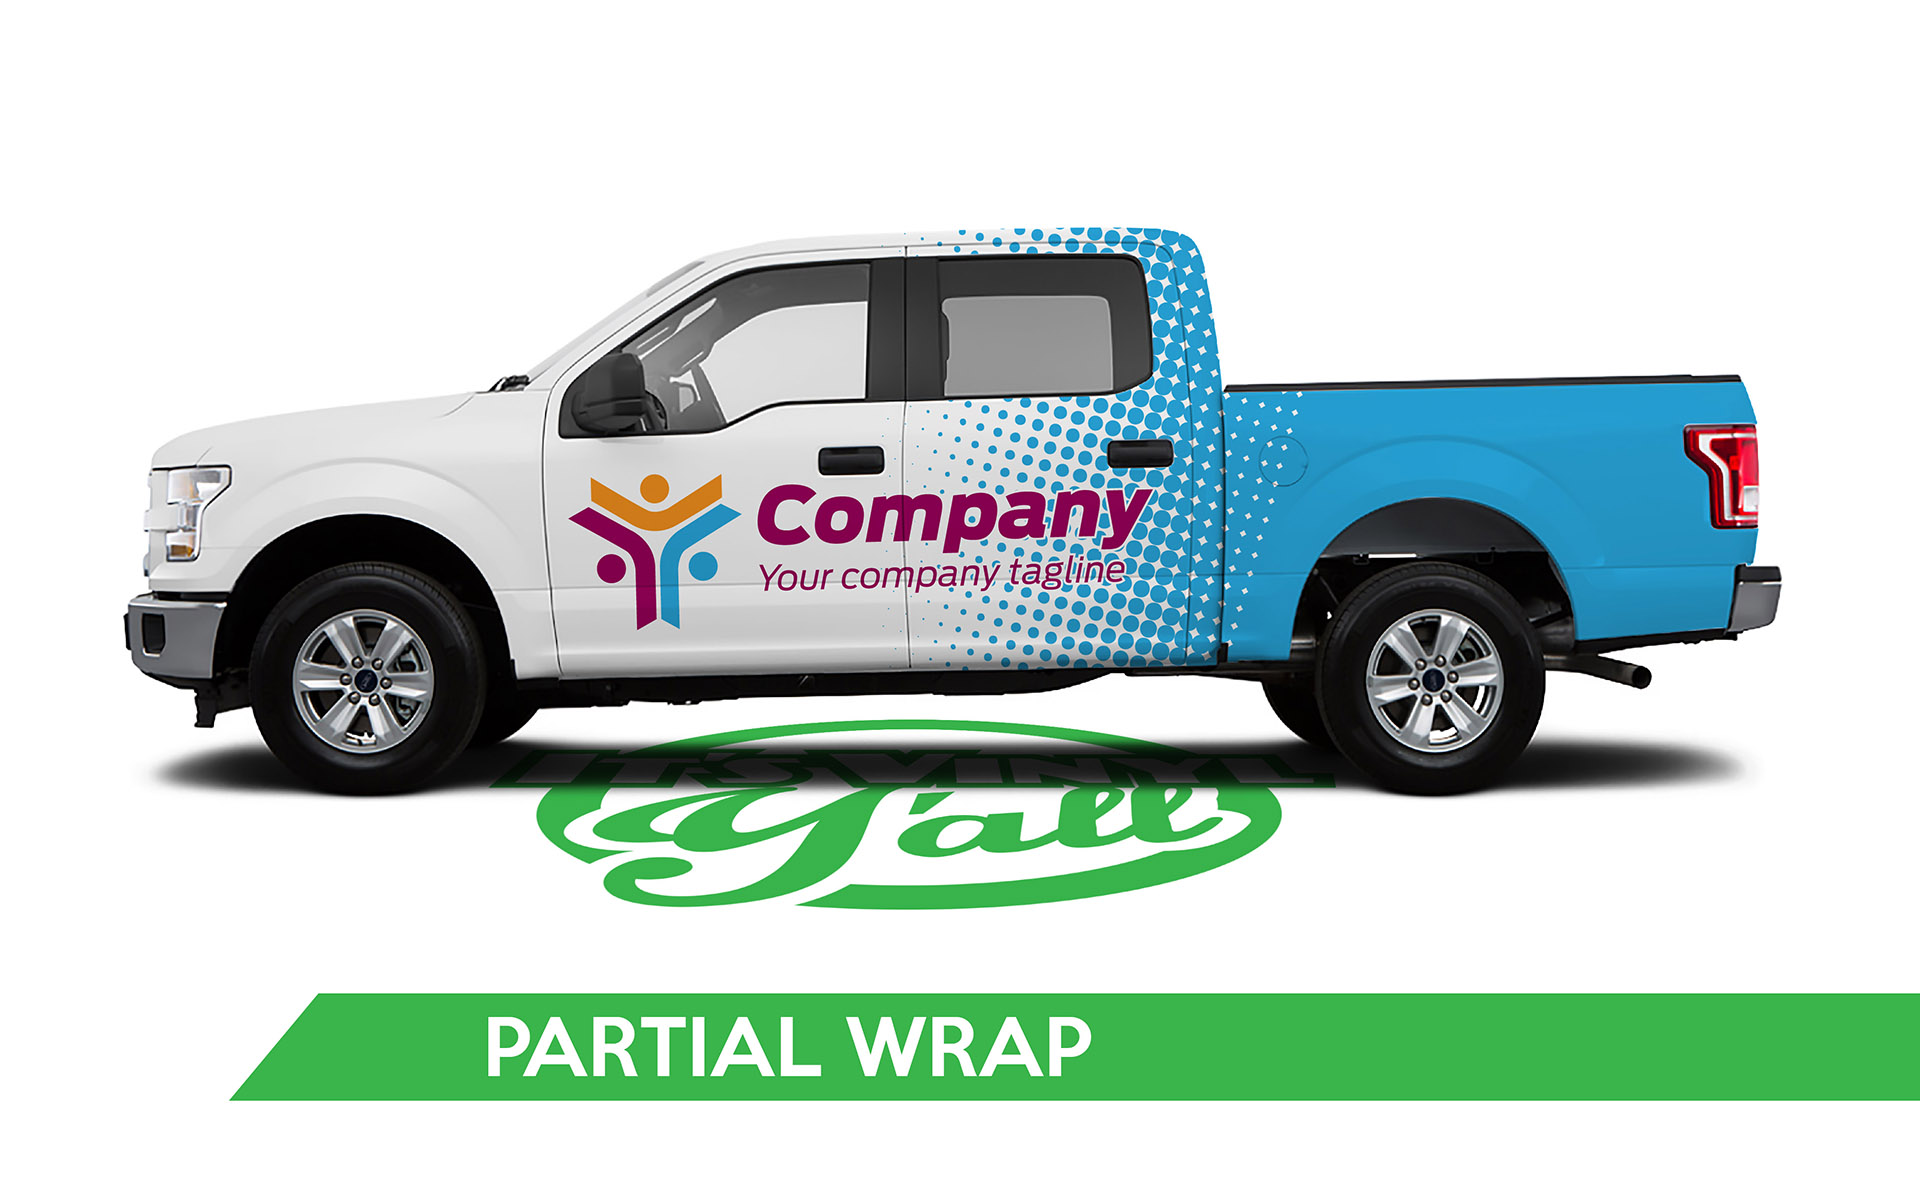 Truck Vehicle Wrap -F150 Partial Wrap